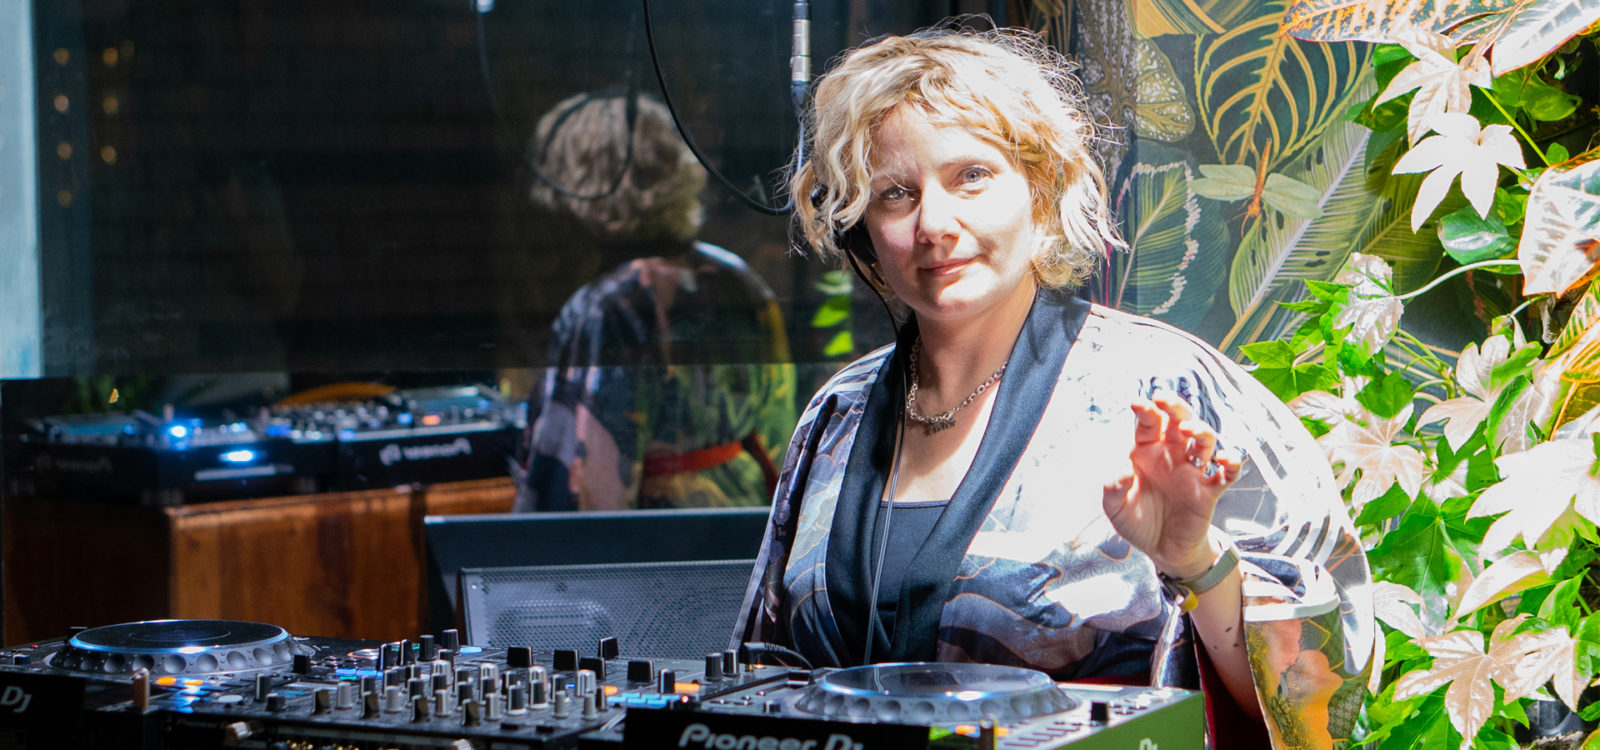 Lady with short blonde hair as DJ